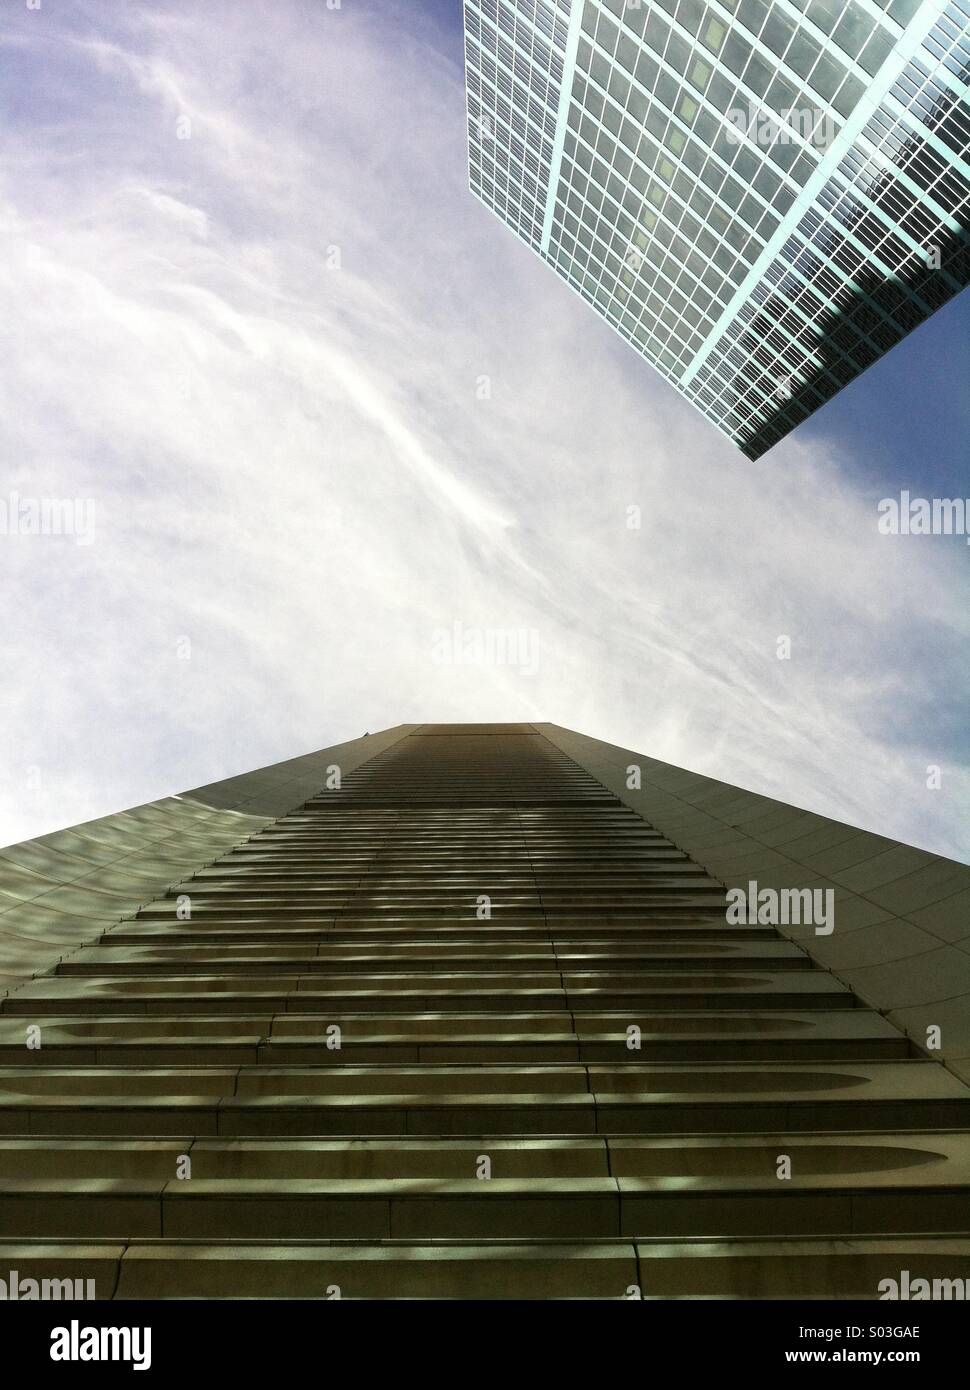 Looking up to the sky at two skyscrapers in Sydney - Stock Image